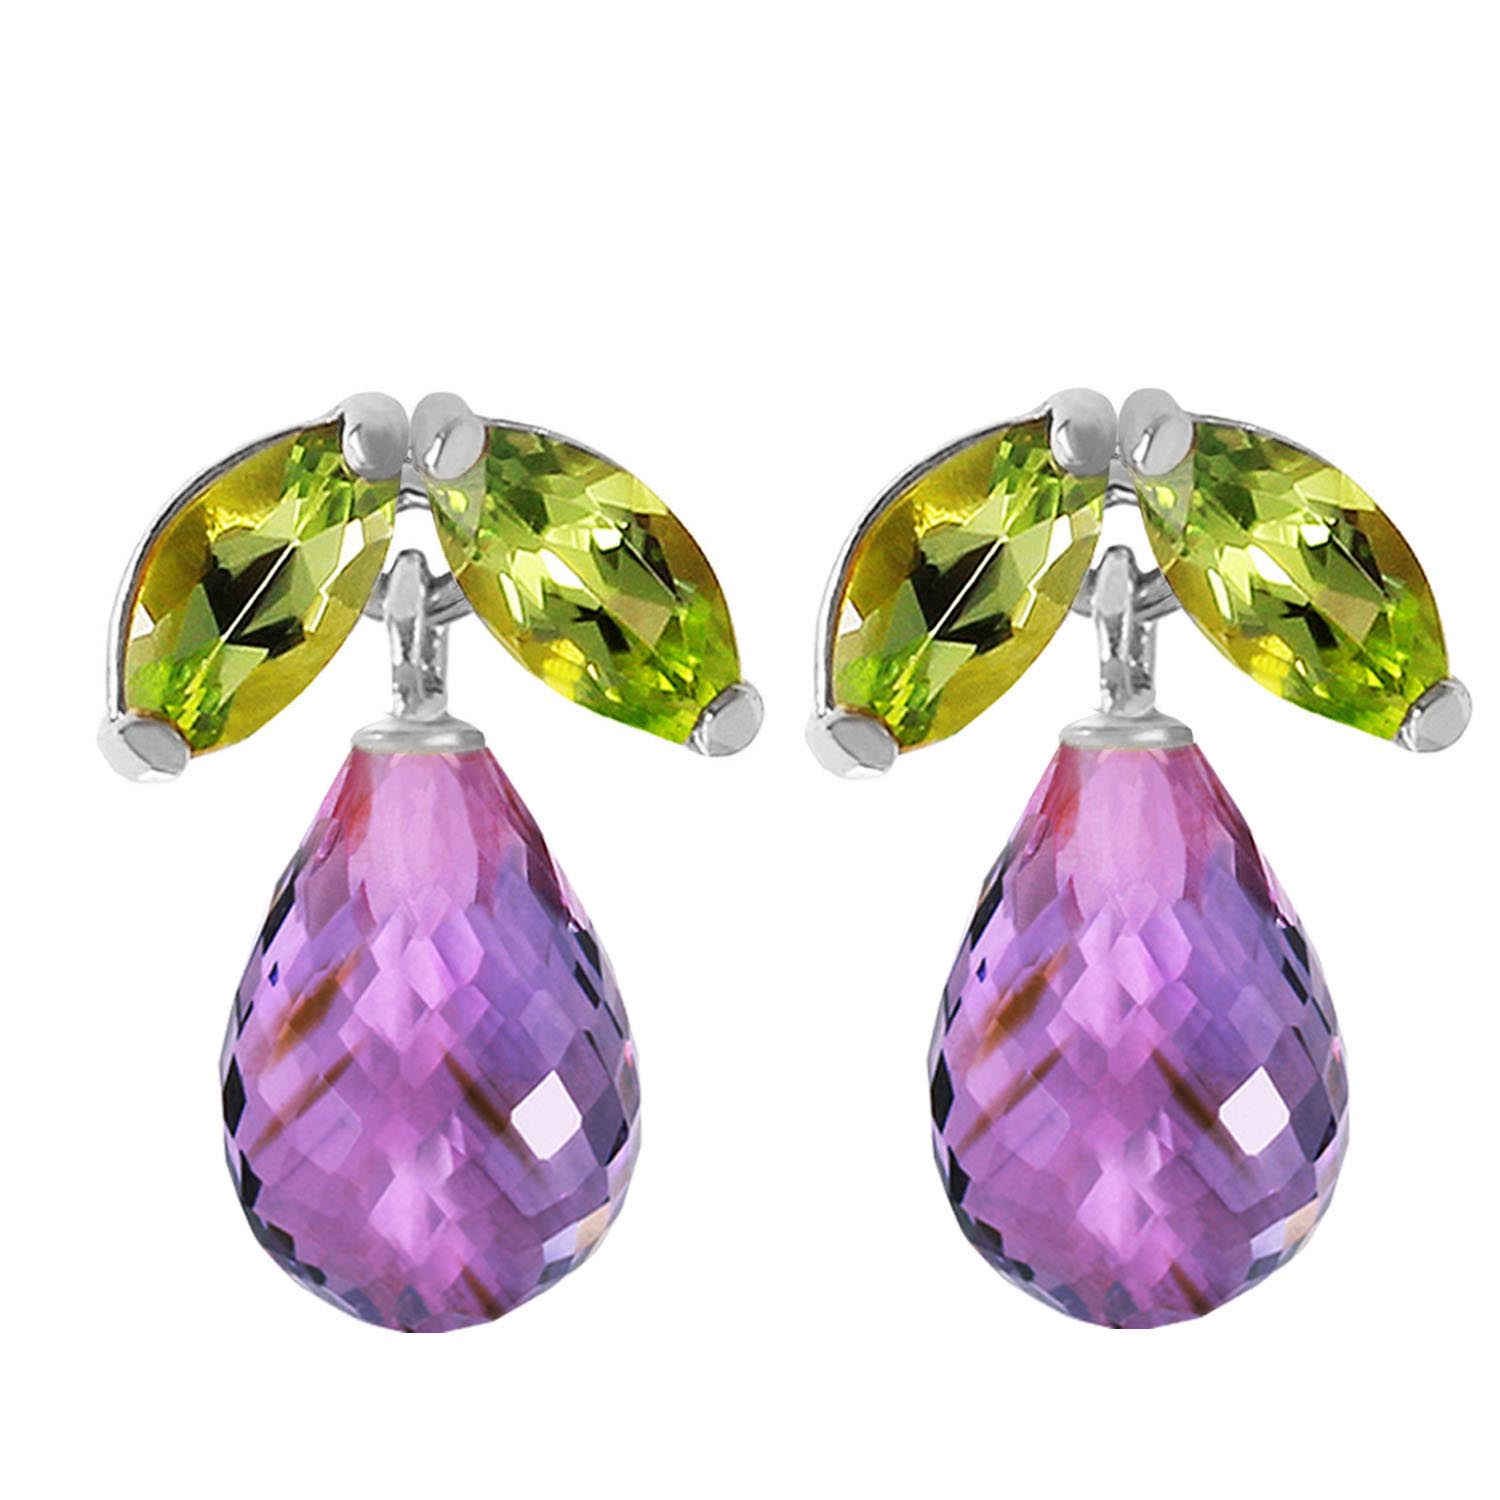 Amethyst and Peridot Snowdrop Stud Earrings 3.4ctw in 14K White Gold